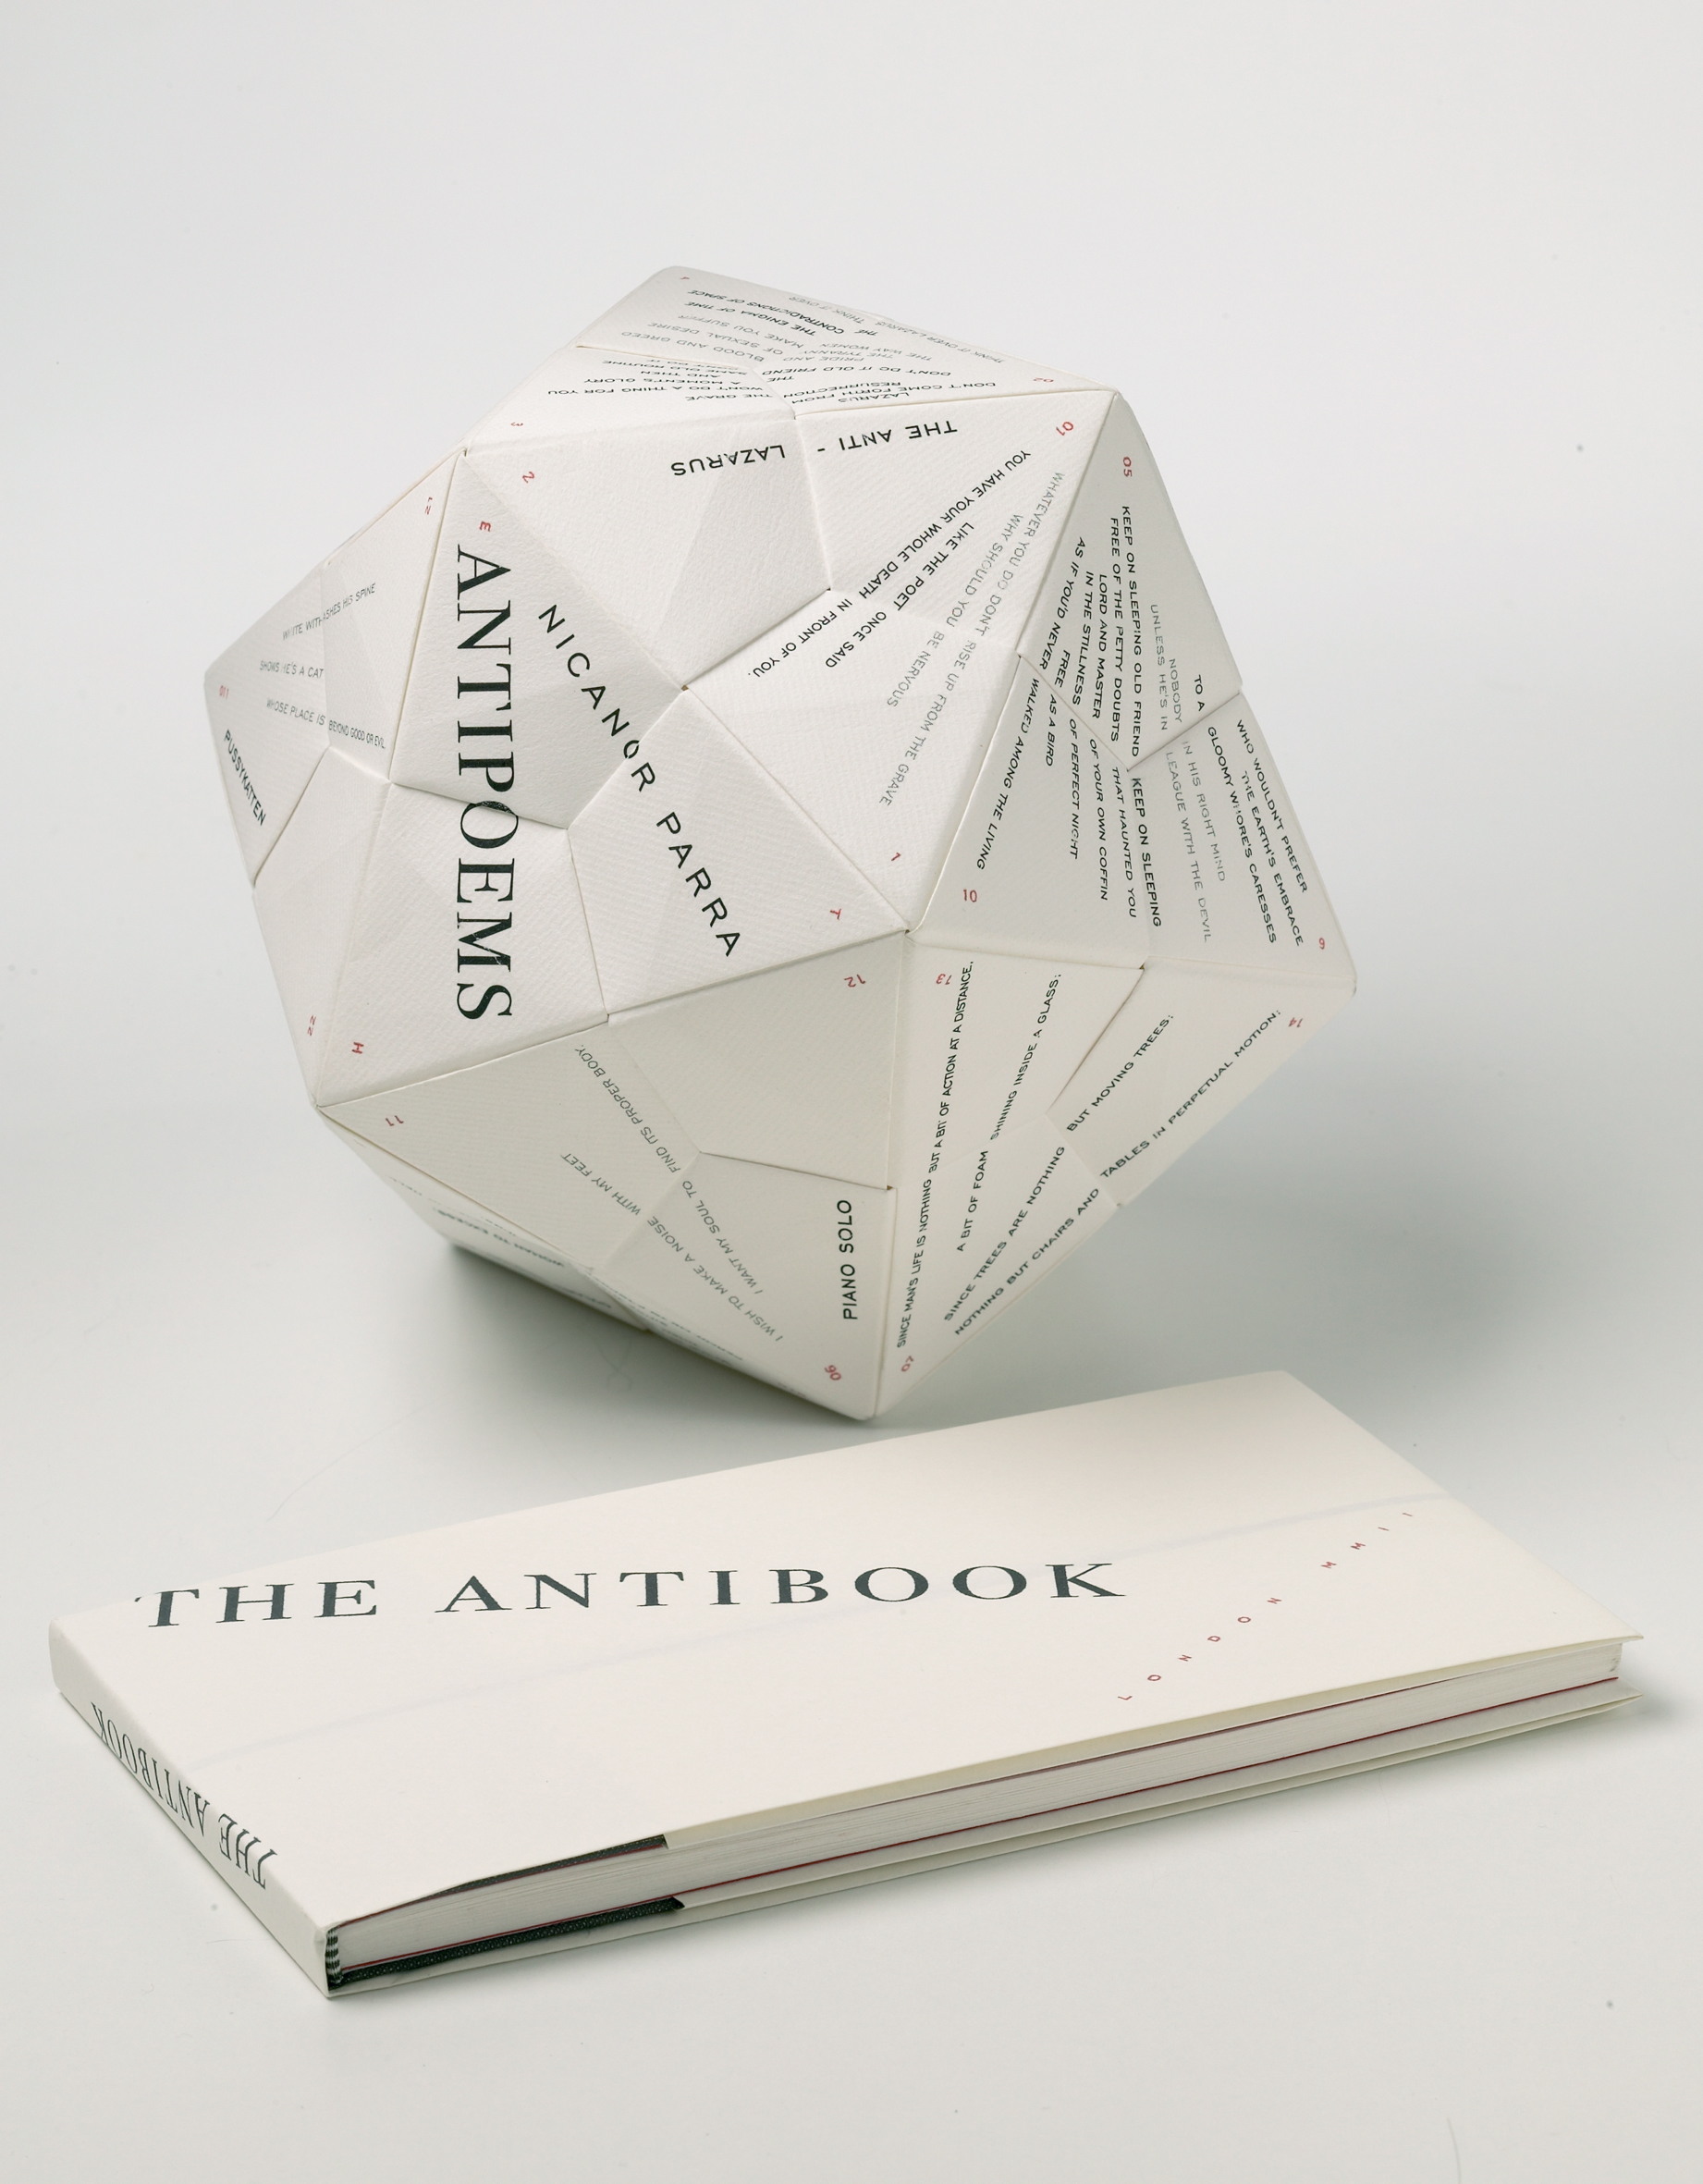 The Antibook by Francisca Prieto, inspired by the poetry of Nicanor Parra. Photo by Xavier Young